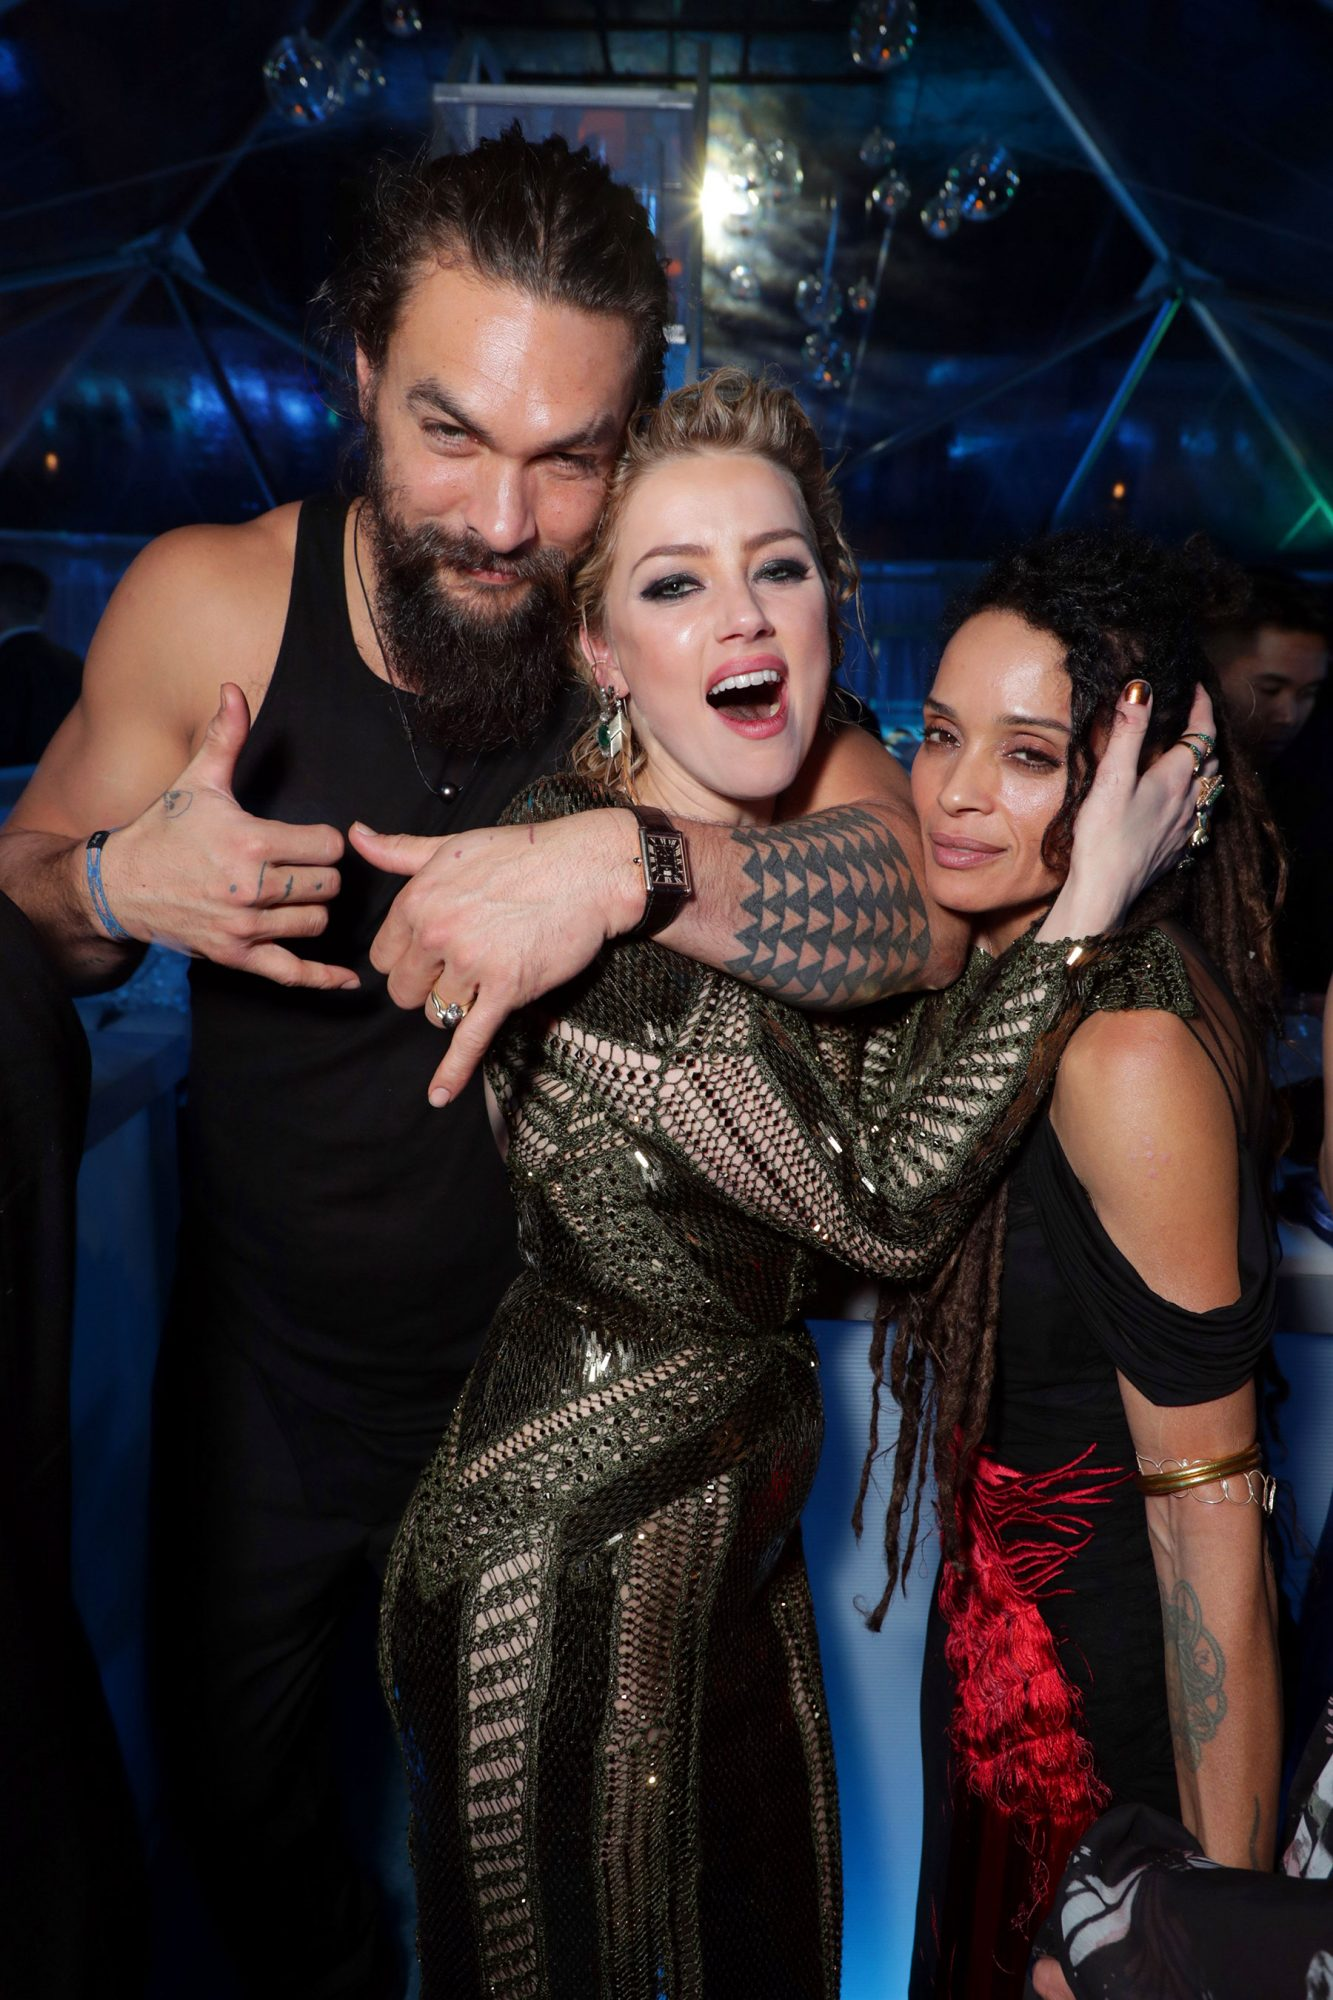 Warner Bros. Pictures World Premiere of AQUAMAN at the TCL Chinese Theatre, Los Angeles, CA, USA - 12 December 2018